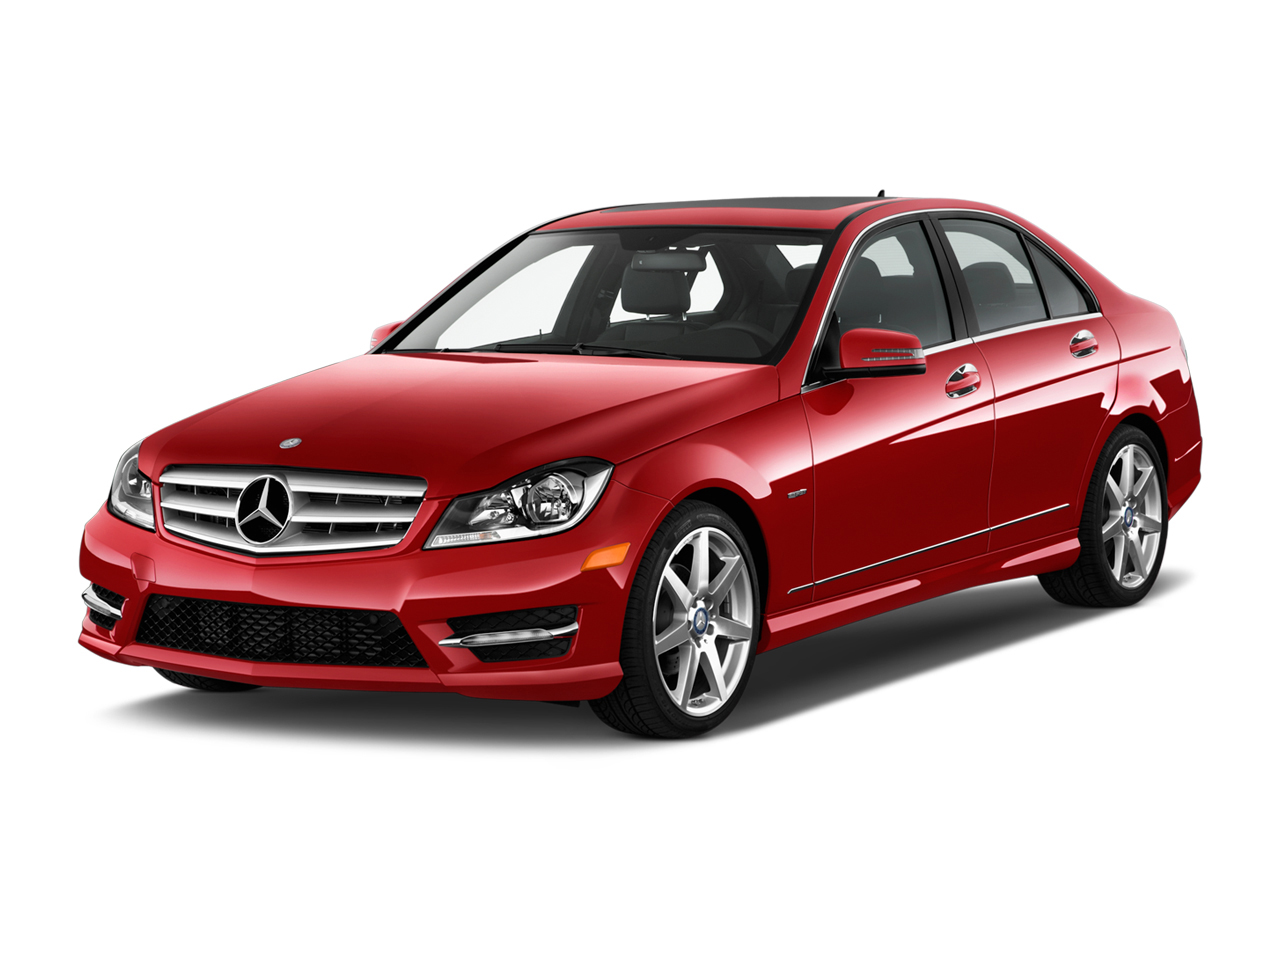 2013 mercedes benz c class review ratings specs prices and photos the car connection. Black Bedroom Furniture Sets. Home Design Ideas